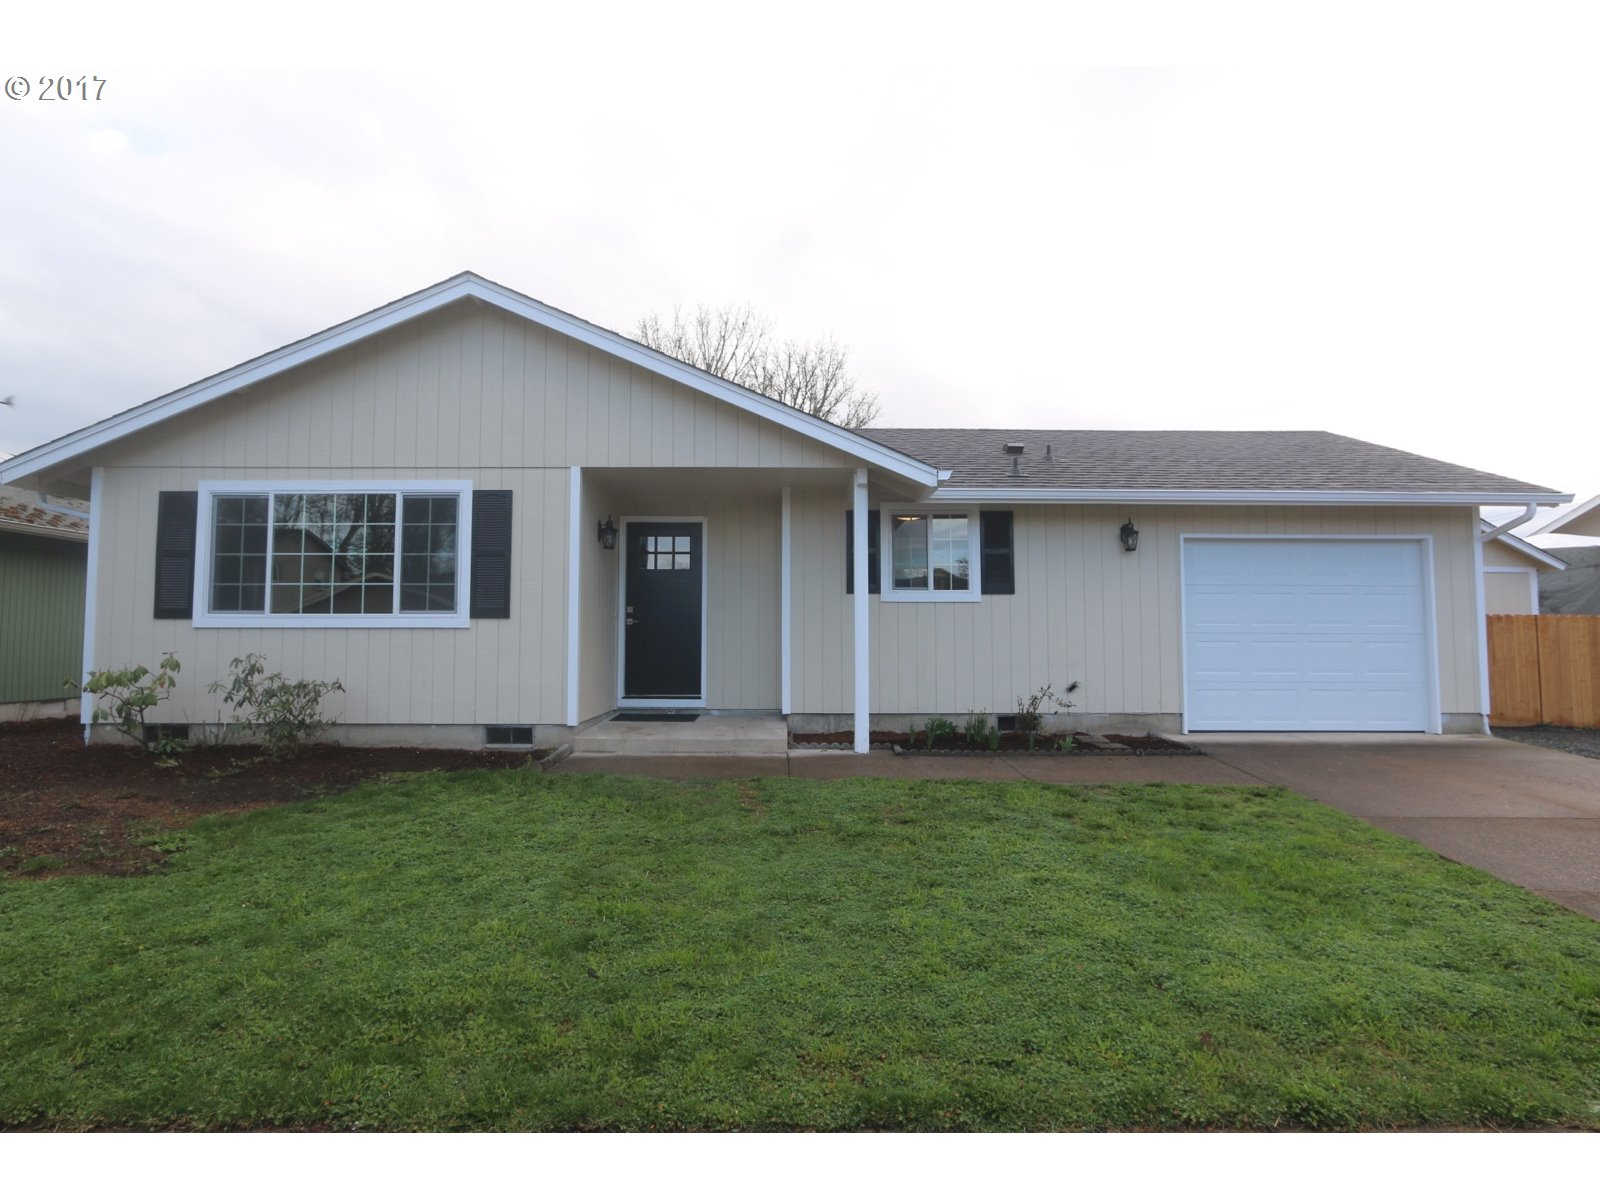 140 TIMOTHY ST, Junction City, OR 97448